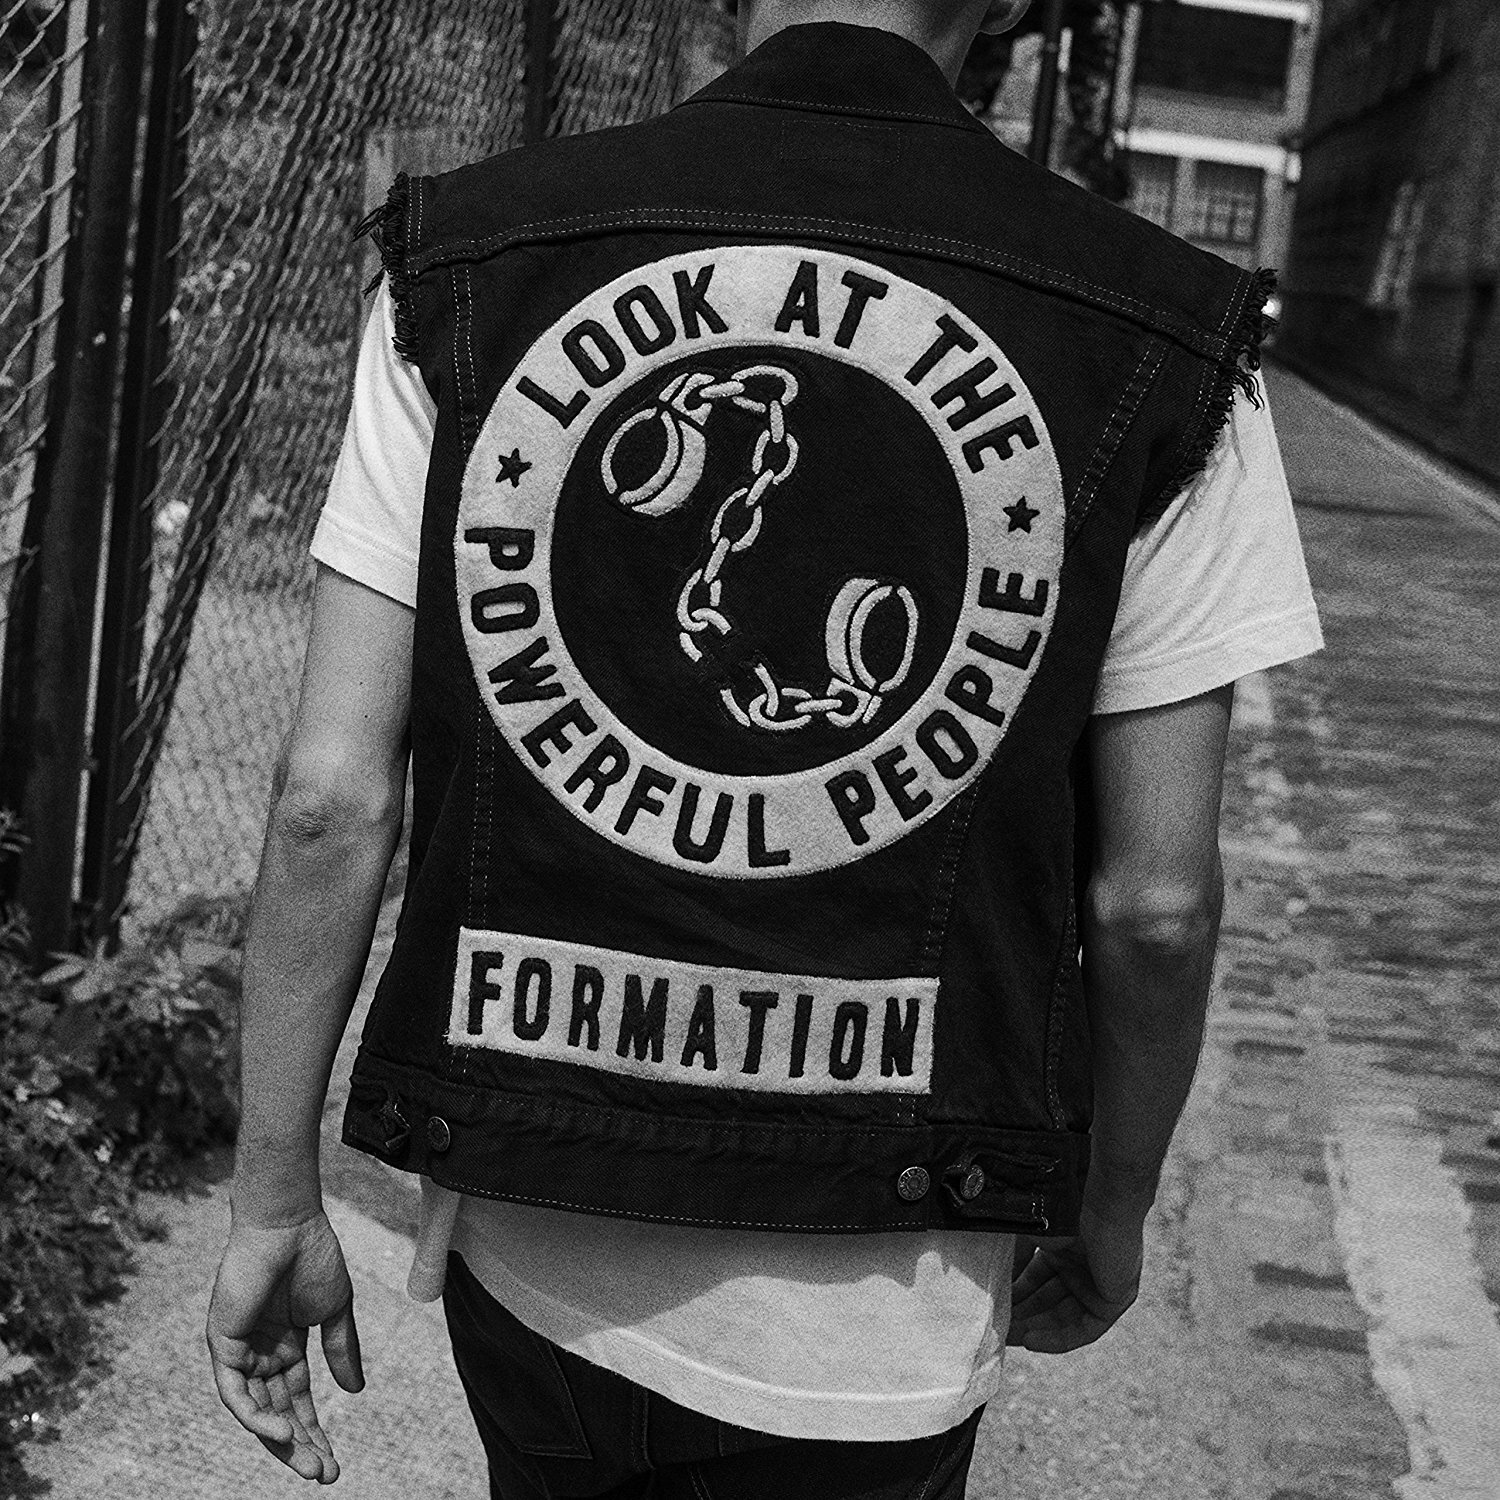 FORMATION – Look At The Powerful People (2017)